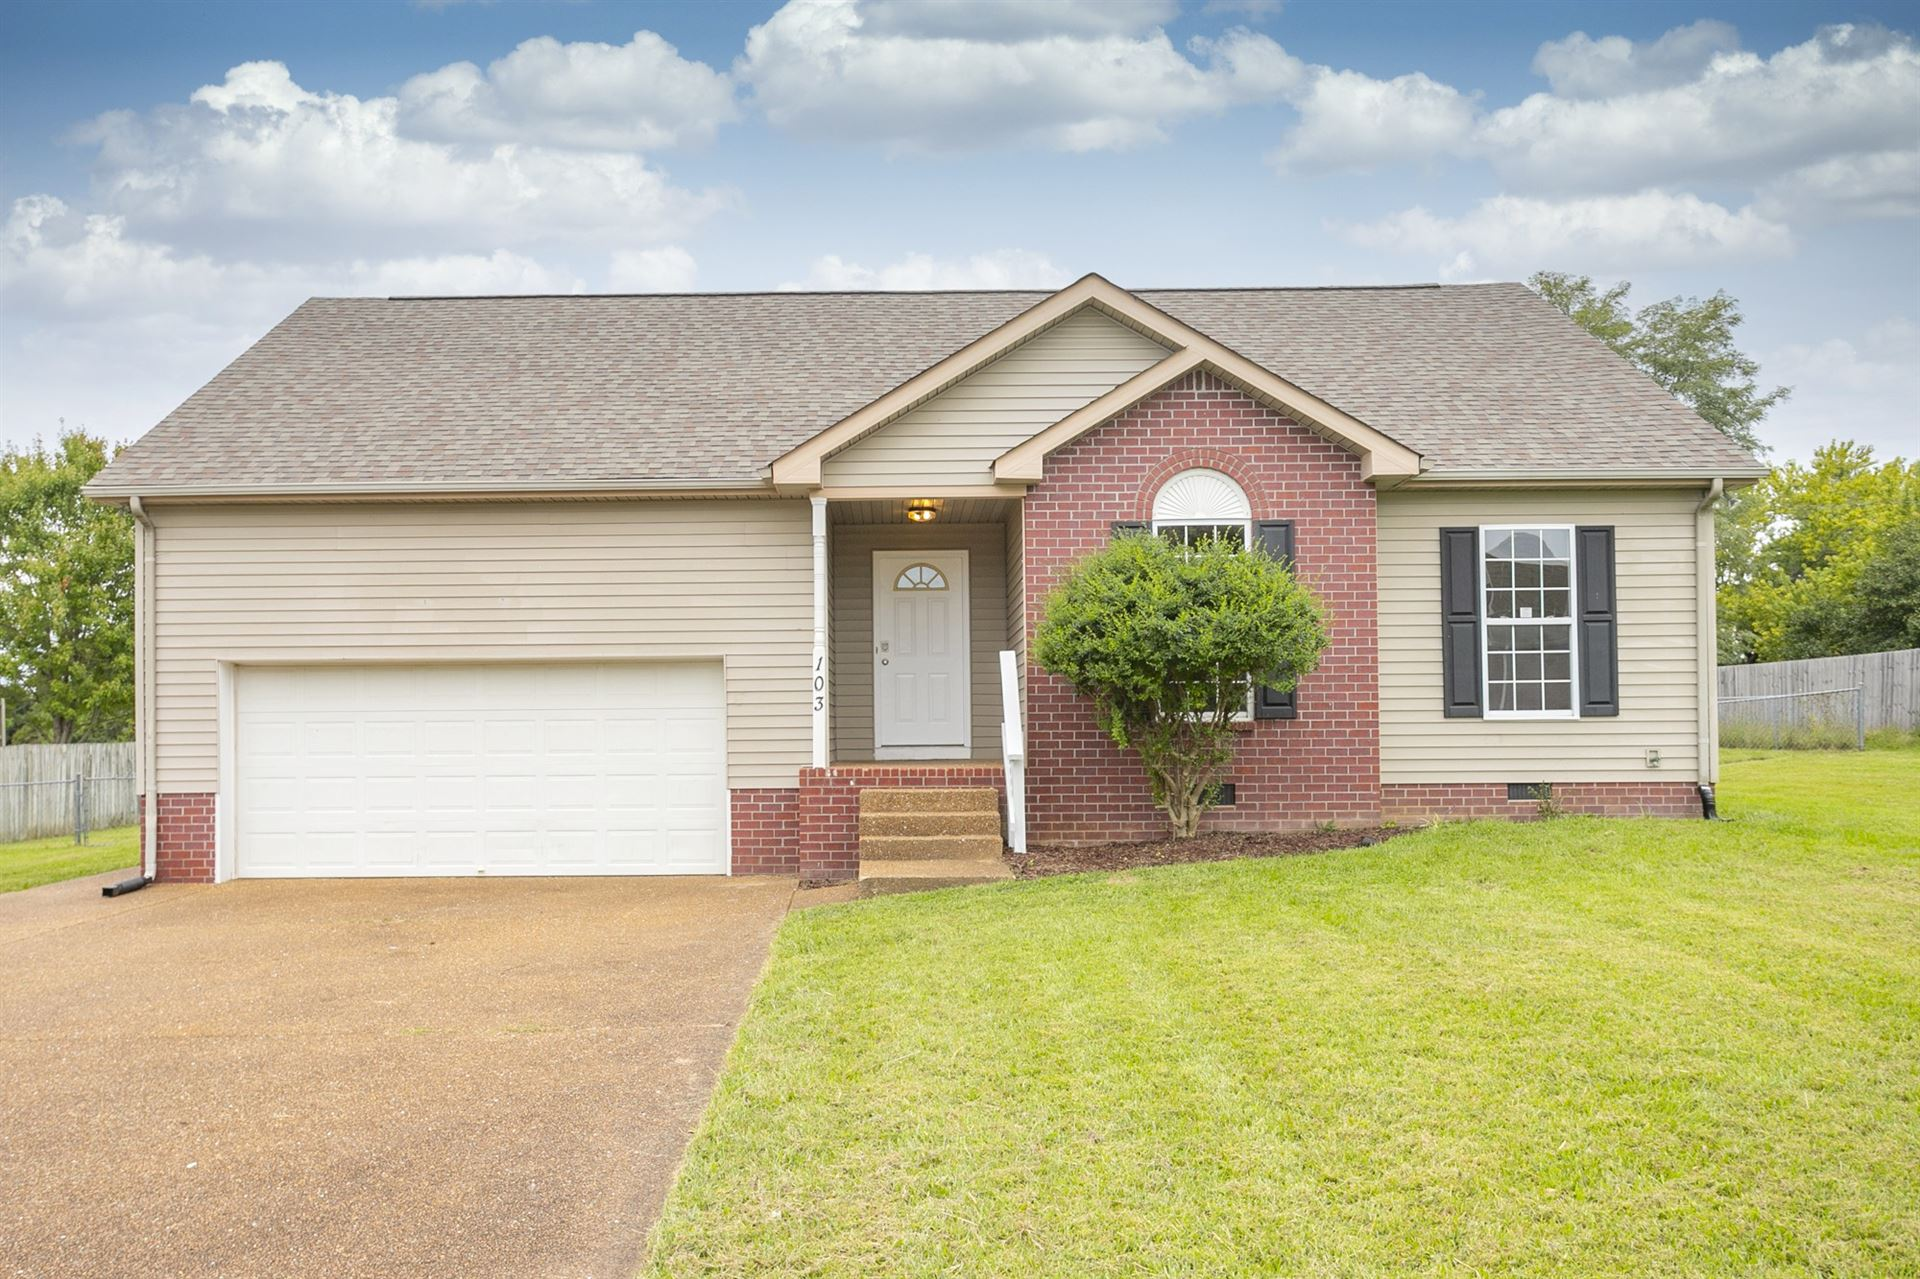 103 Charles Way, Portland, TN 37148 - MLS#: 2192822